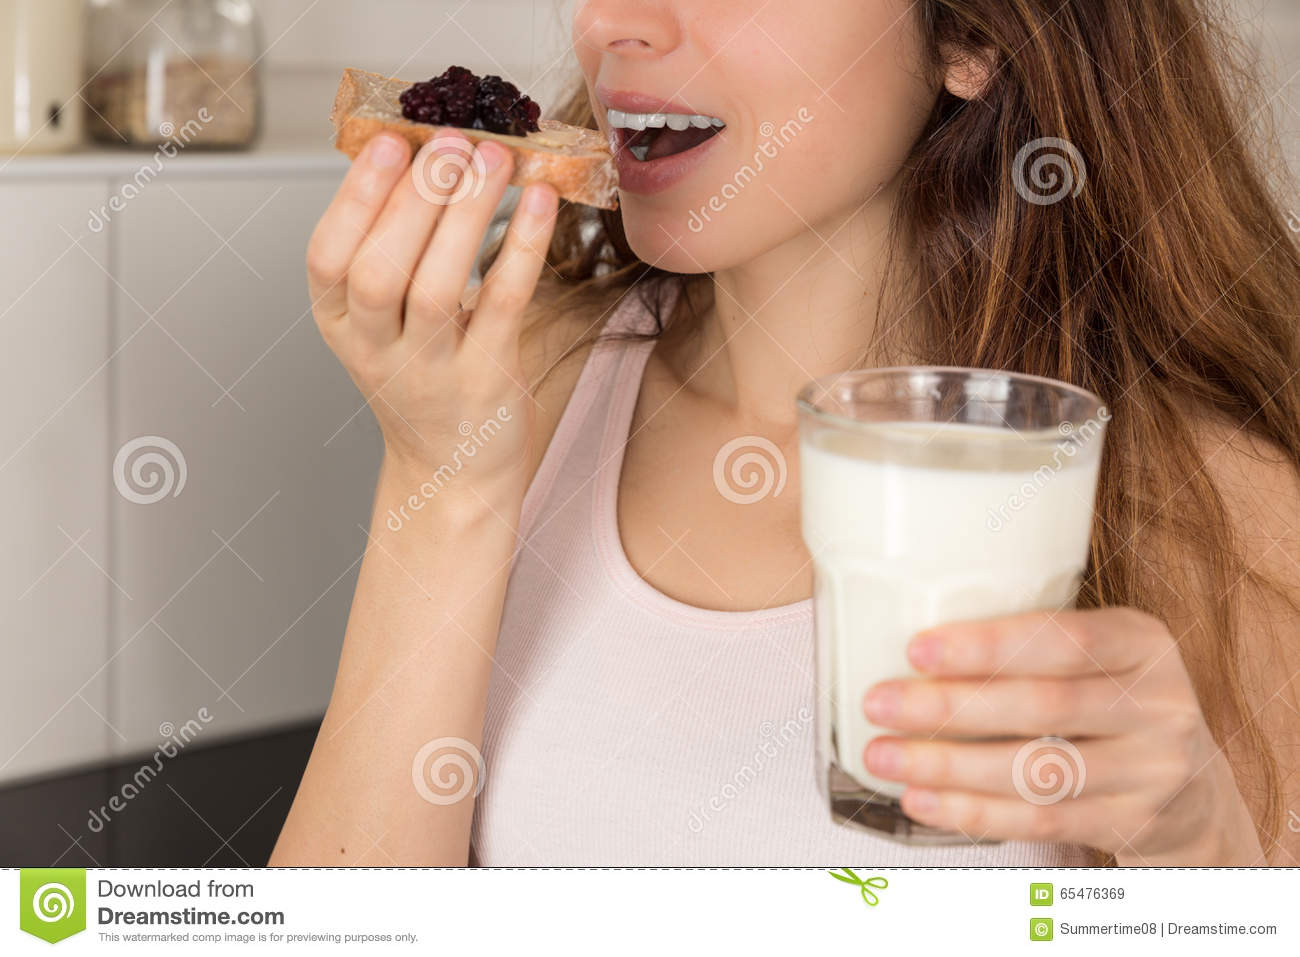 Woman having breakfast with a glass of milk